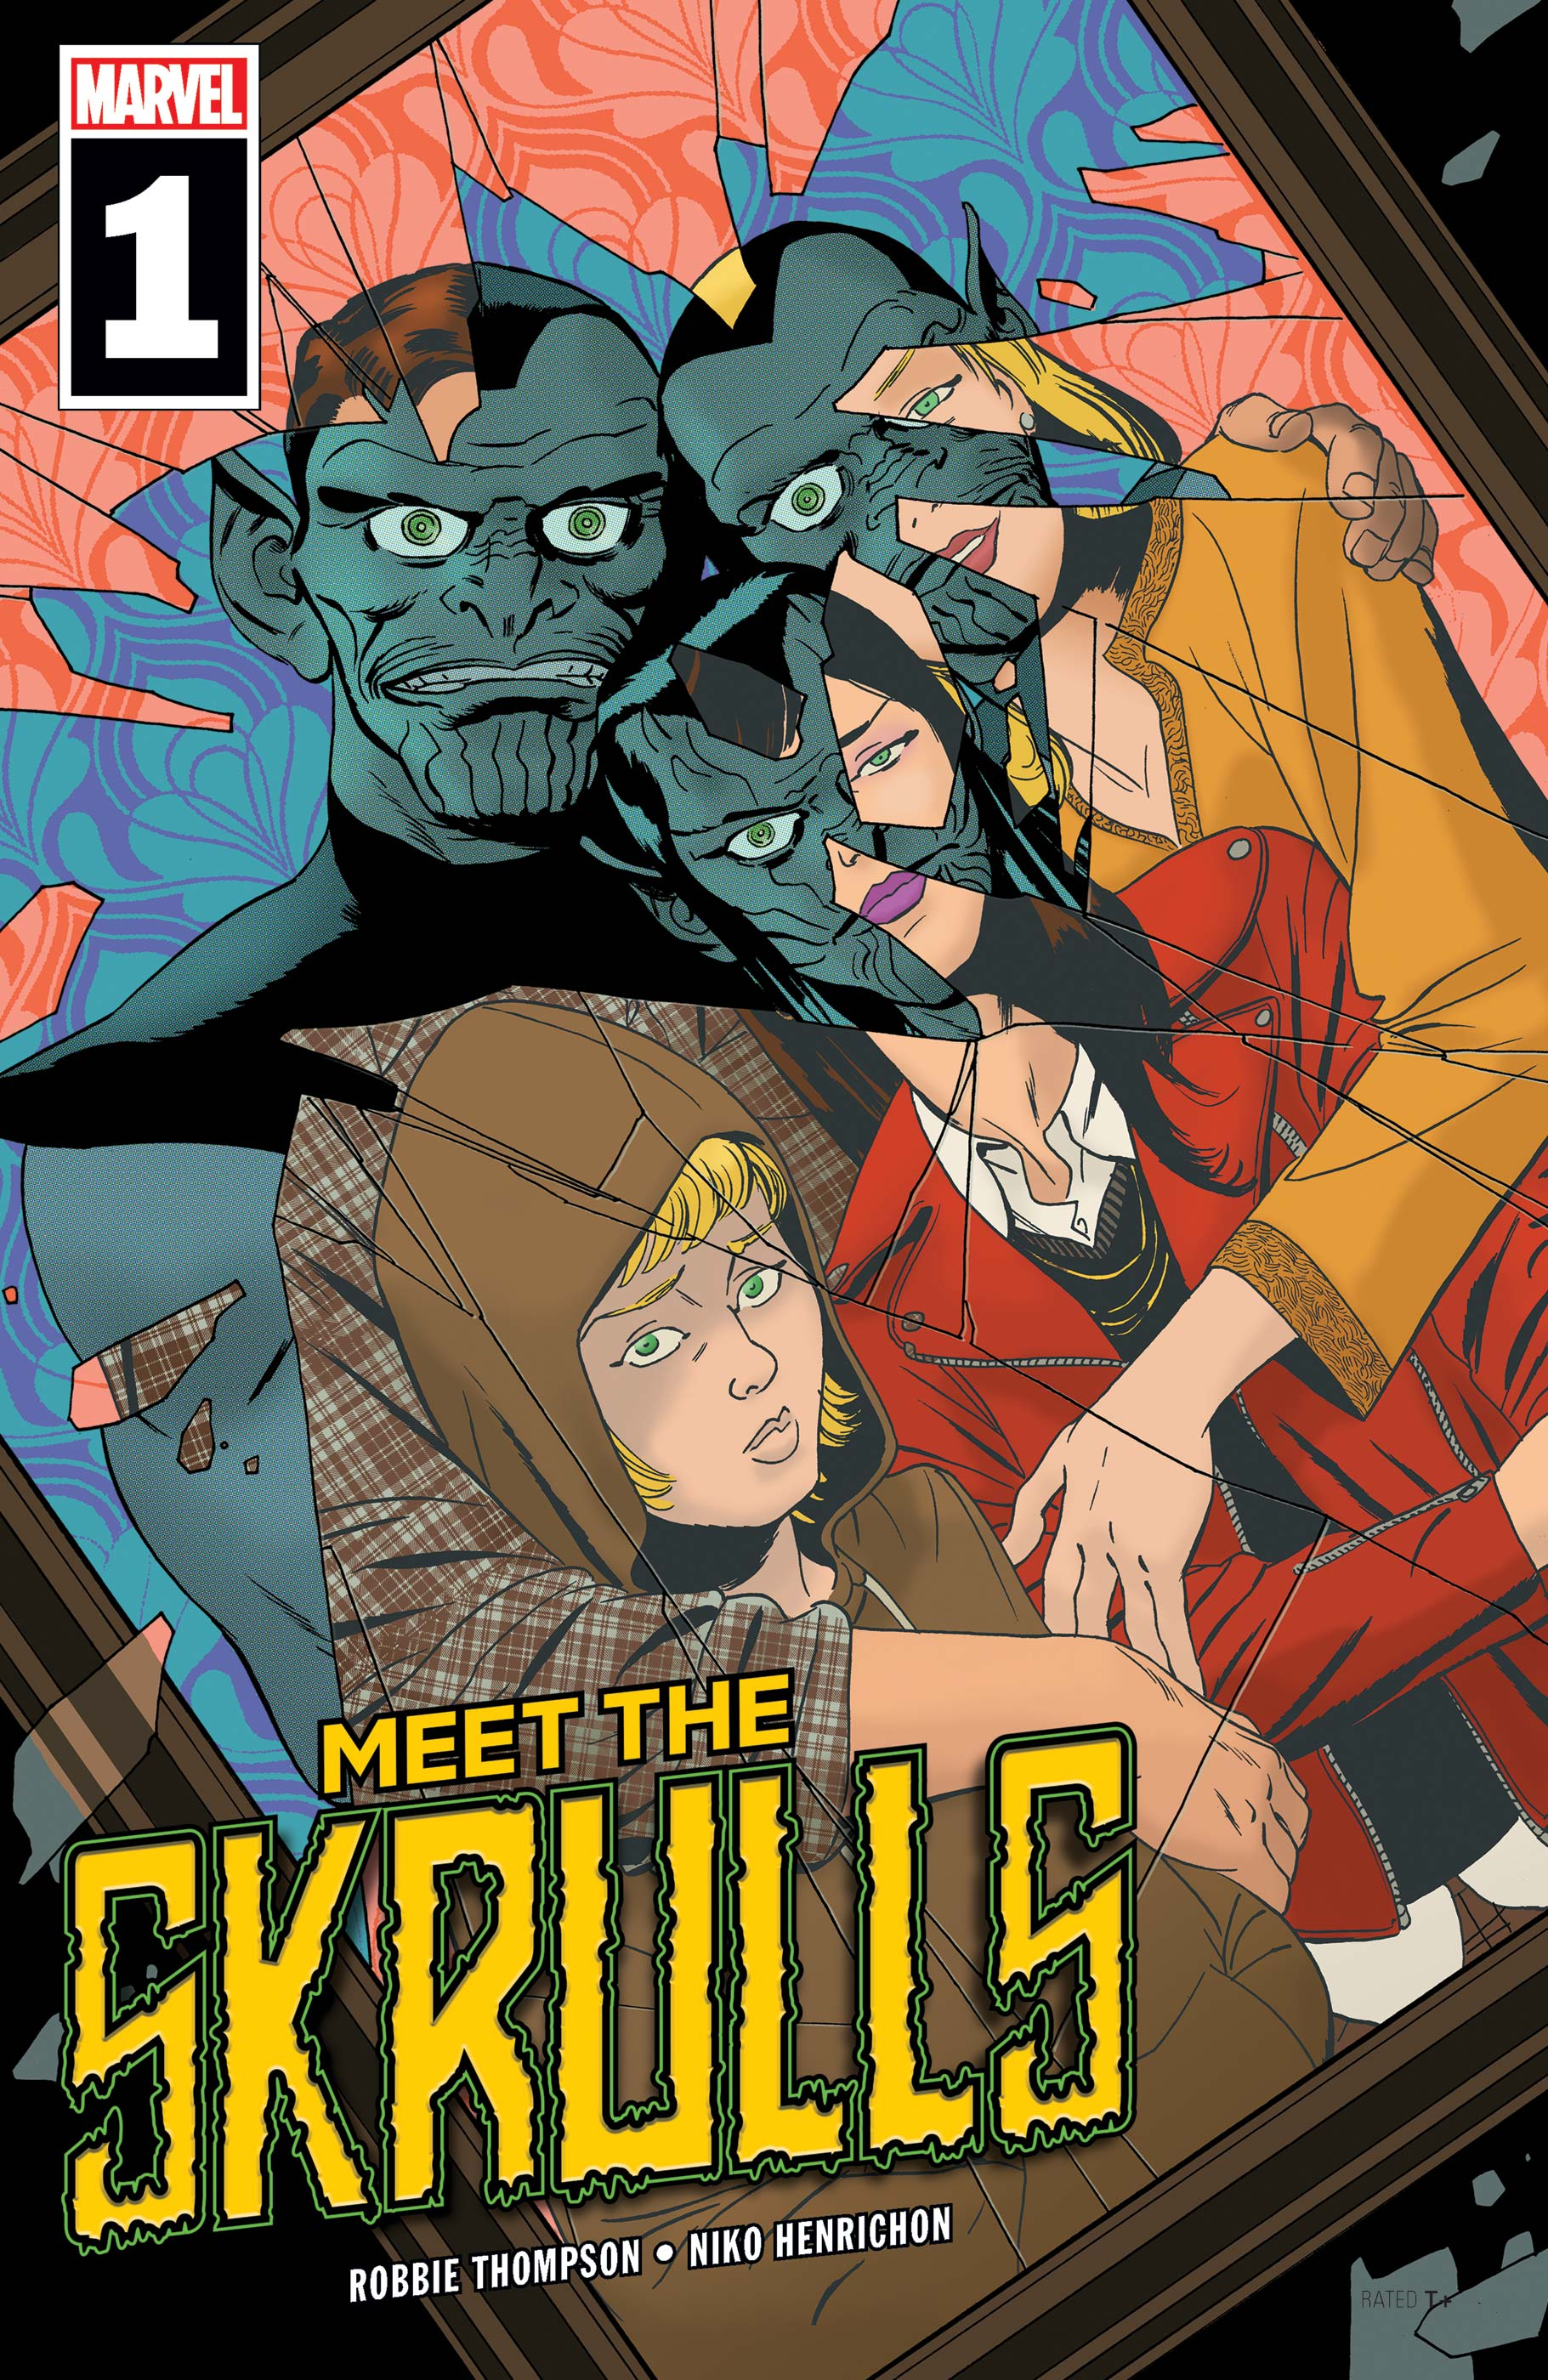 Image result for meet the skrulls 1